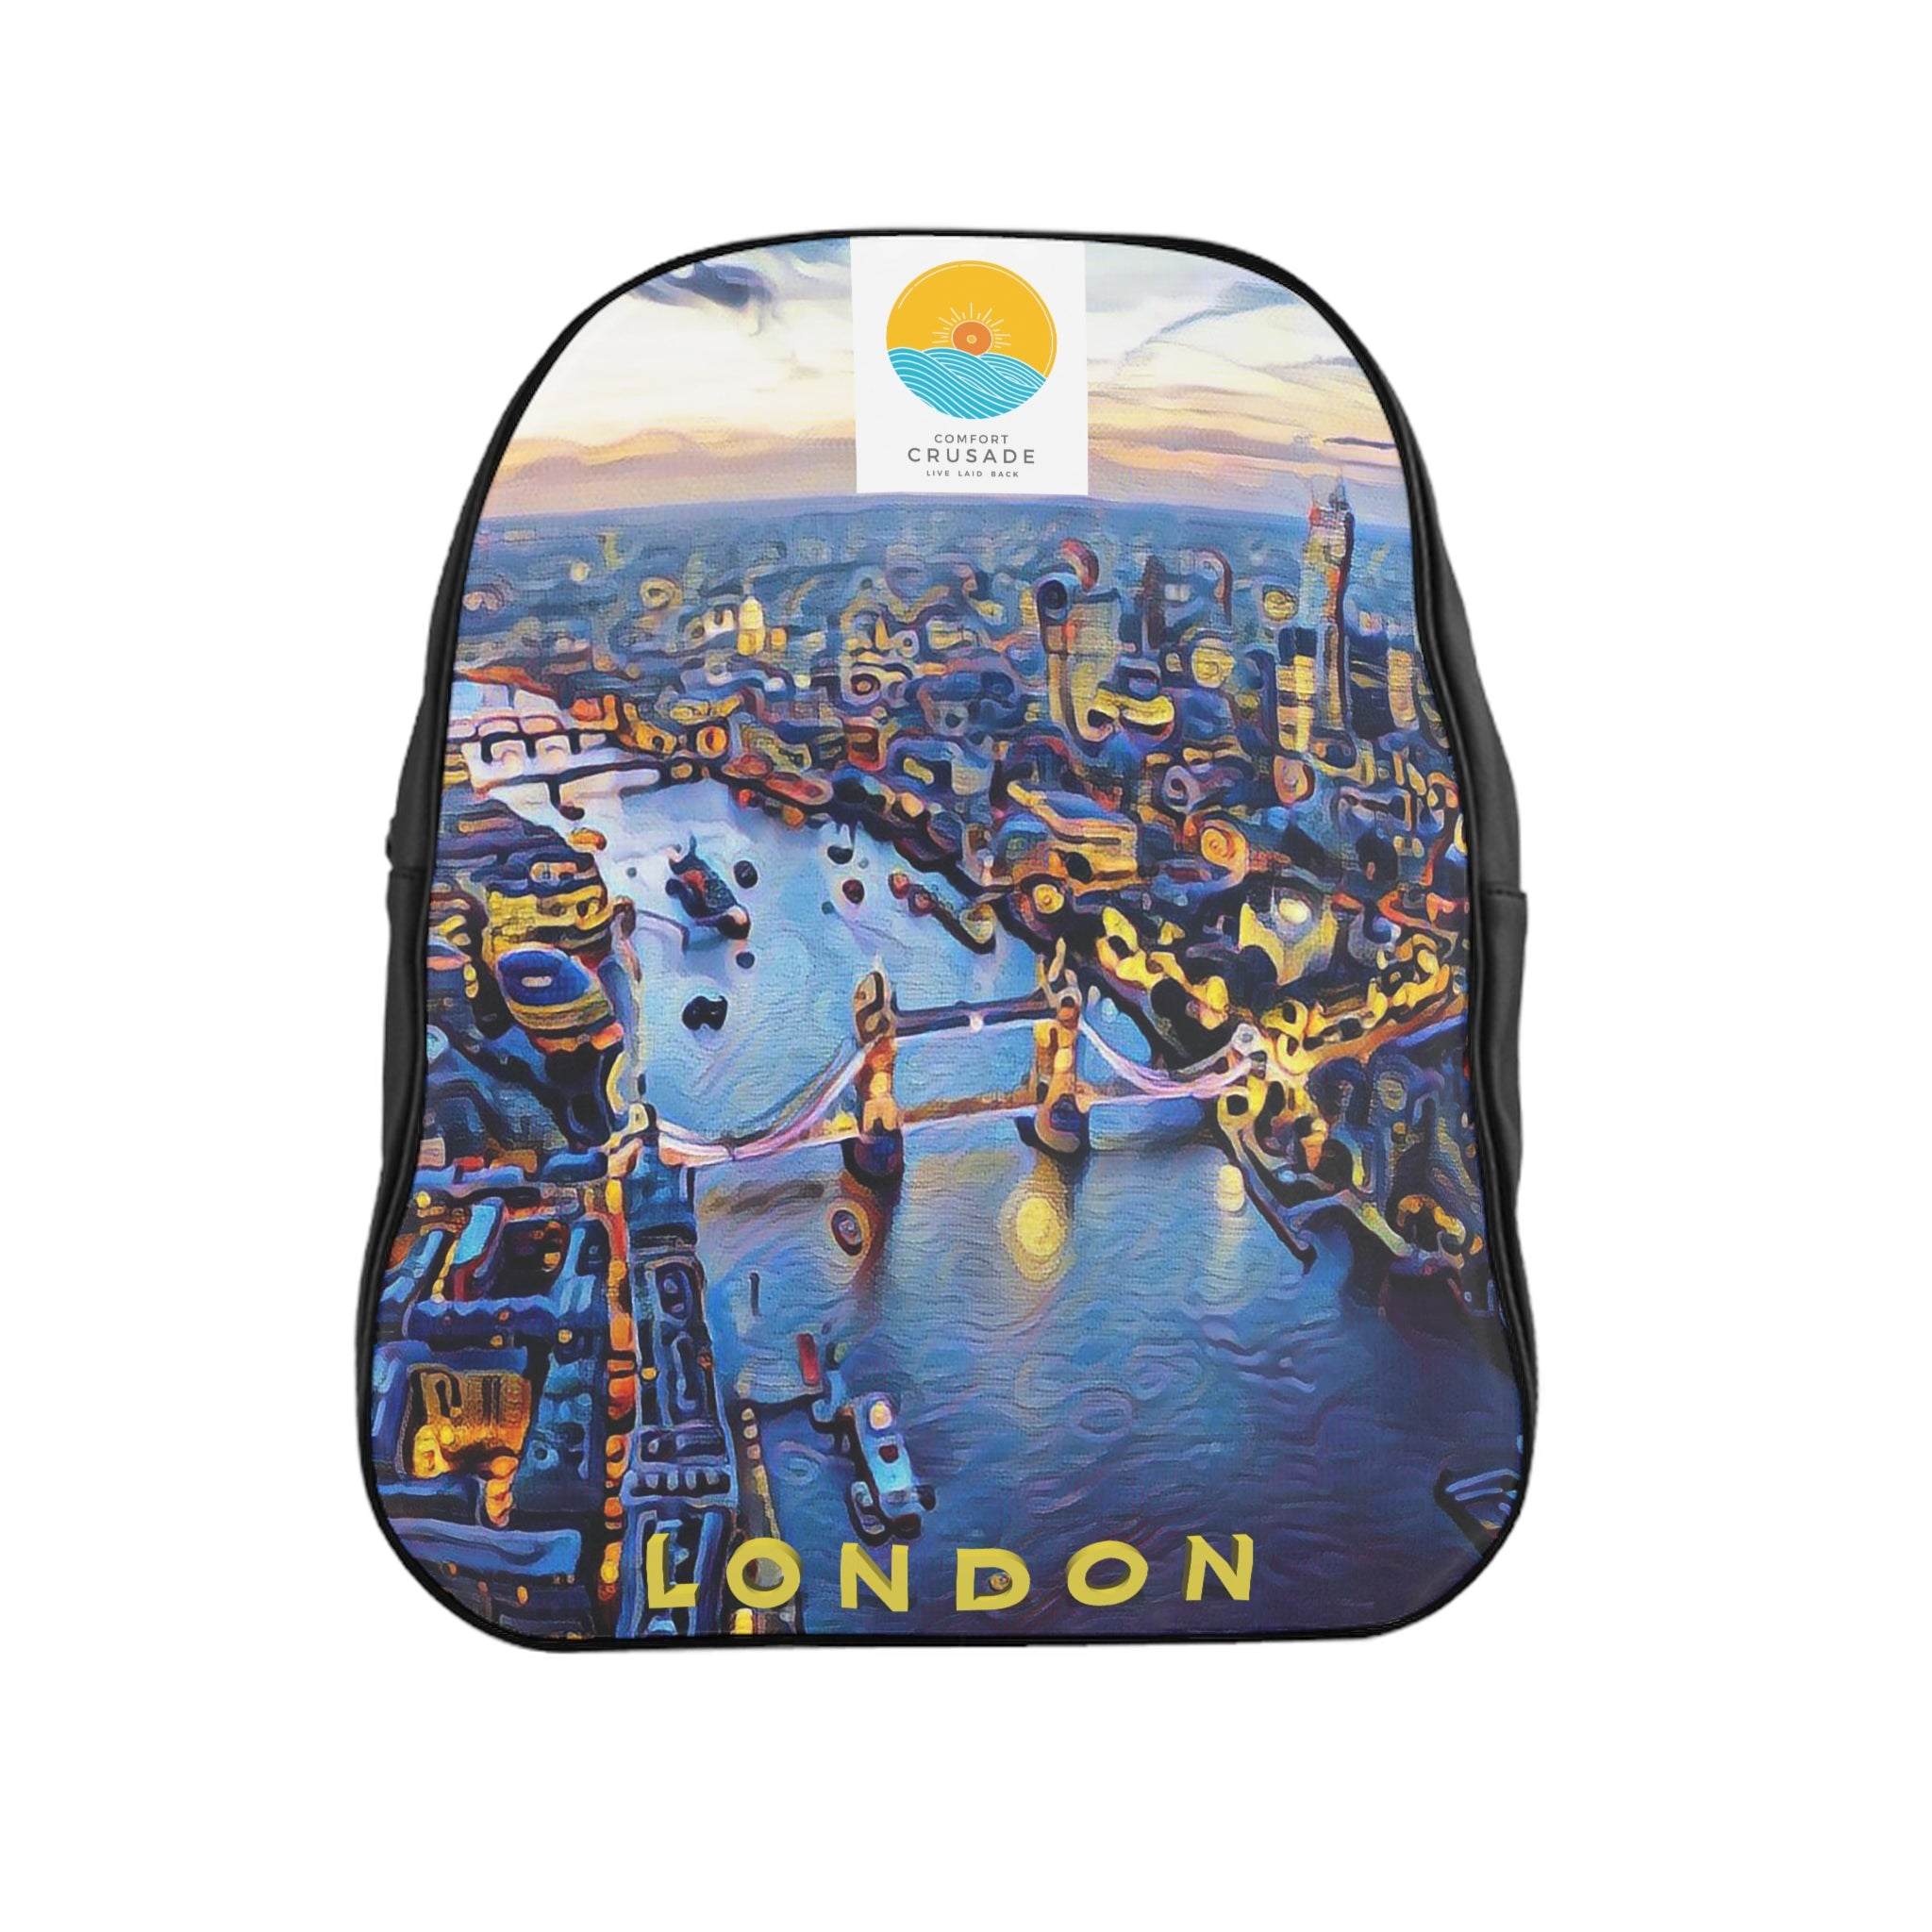 Comfort Crusade London Utility Backpack - The Comfort Crusade Shopping Lounge